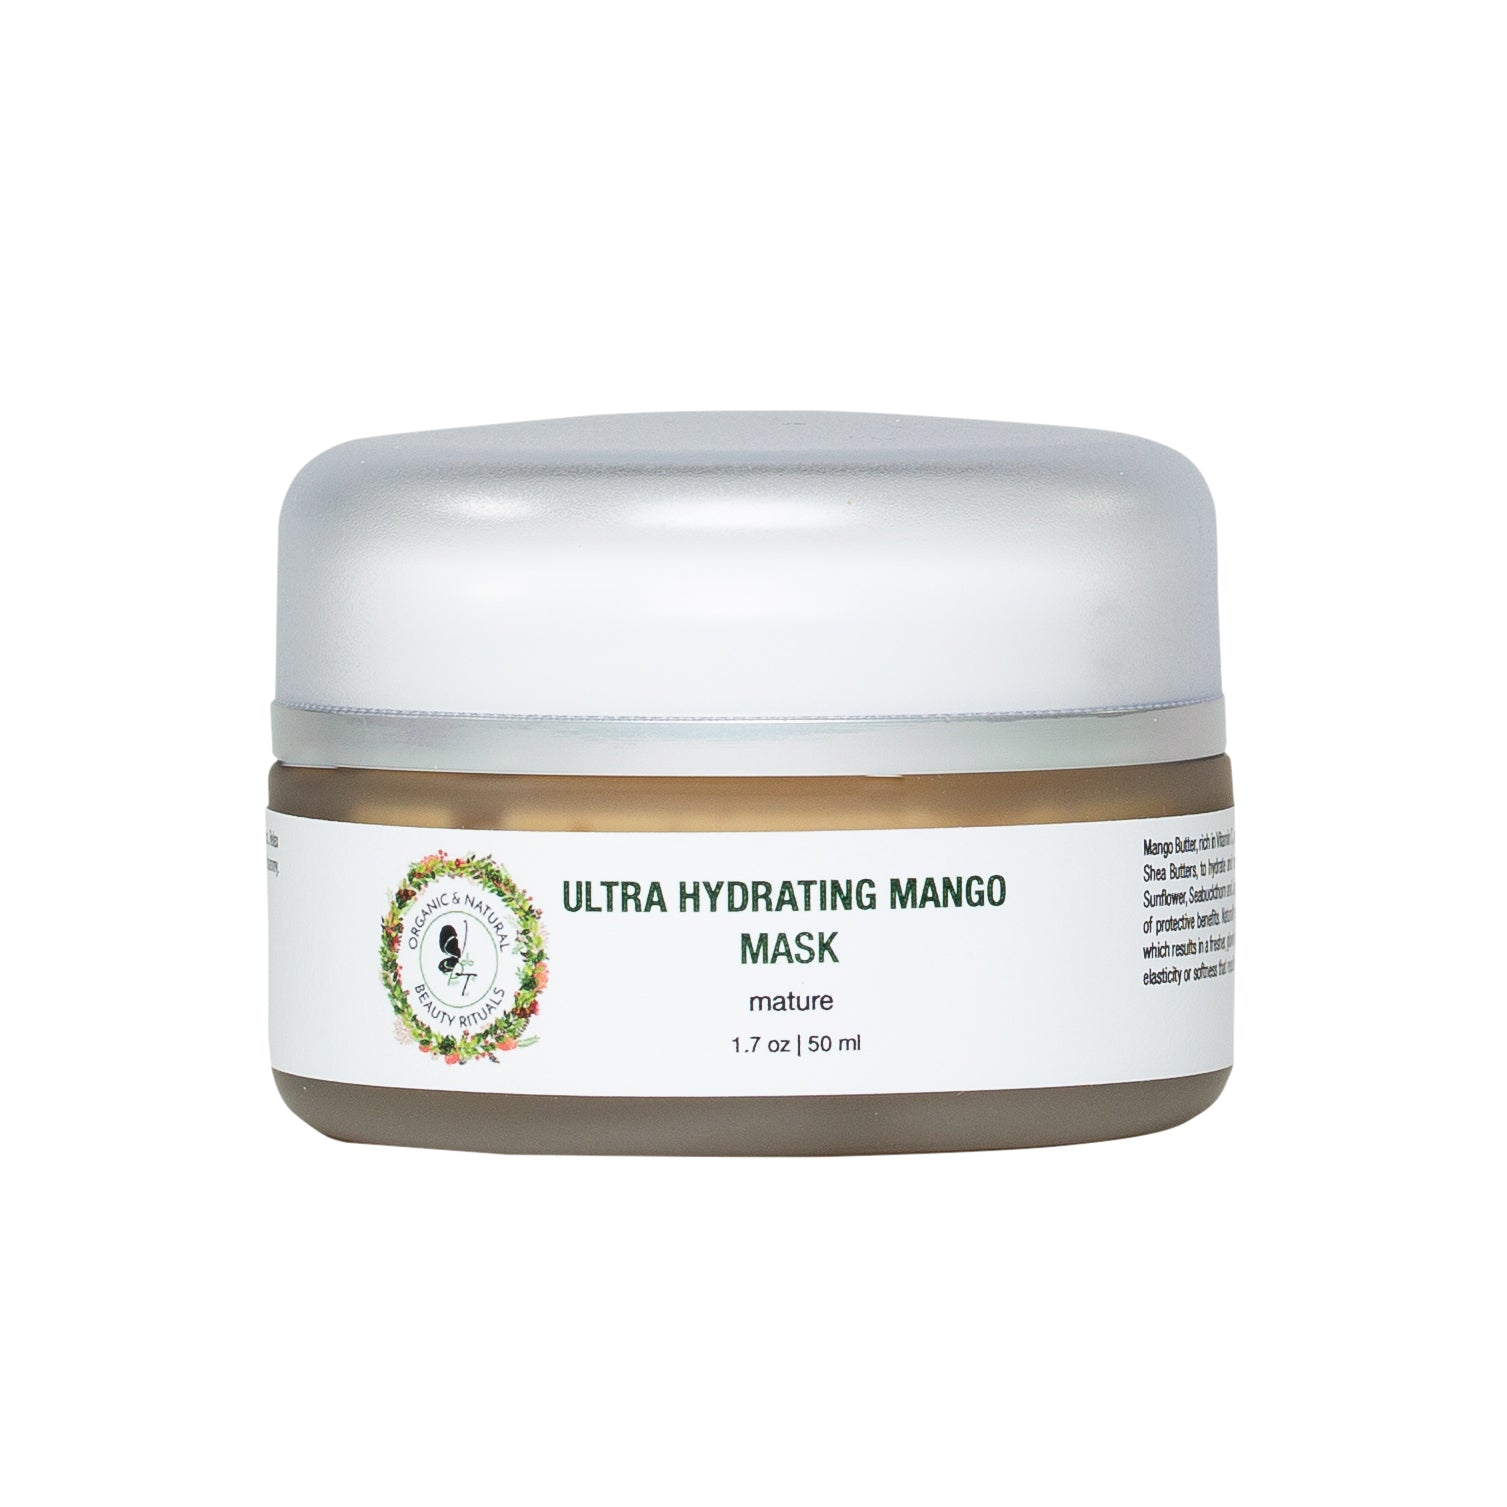 Ultra Hydrating Mango Mask